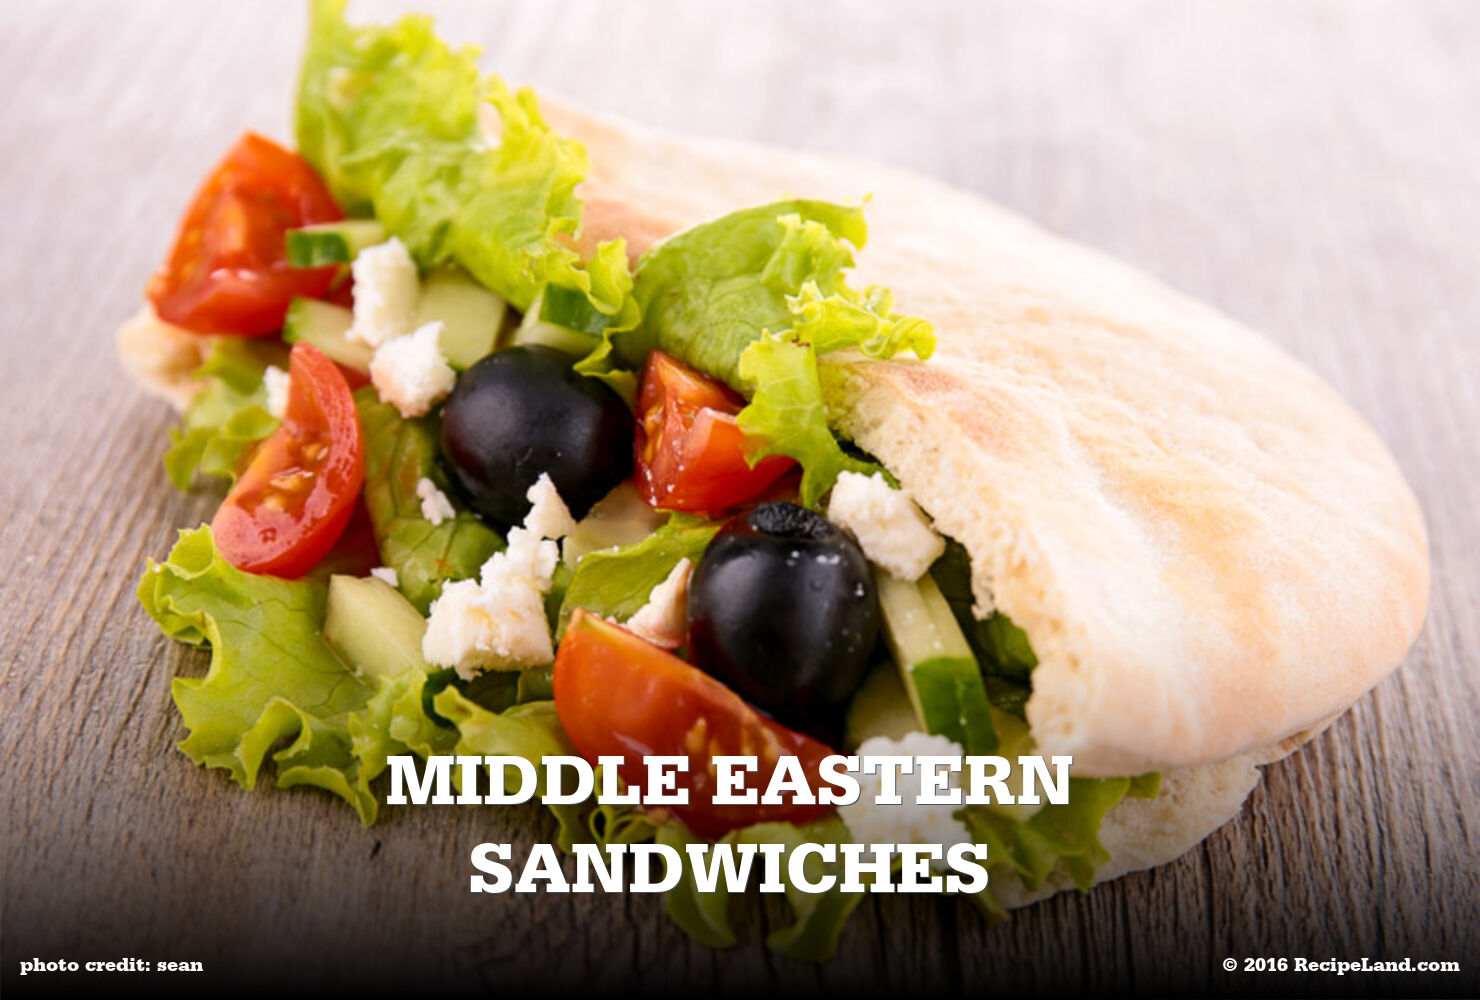 Middle Eastern Sandwiches